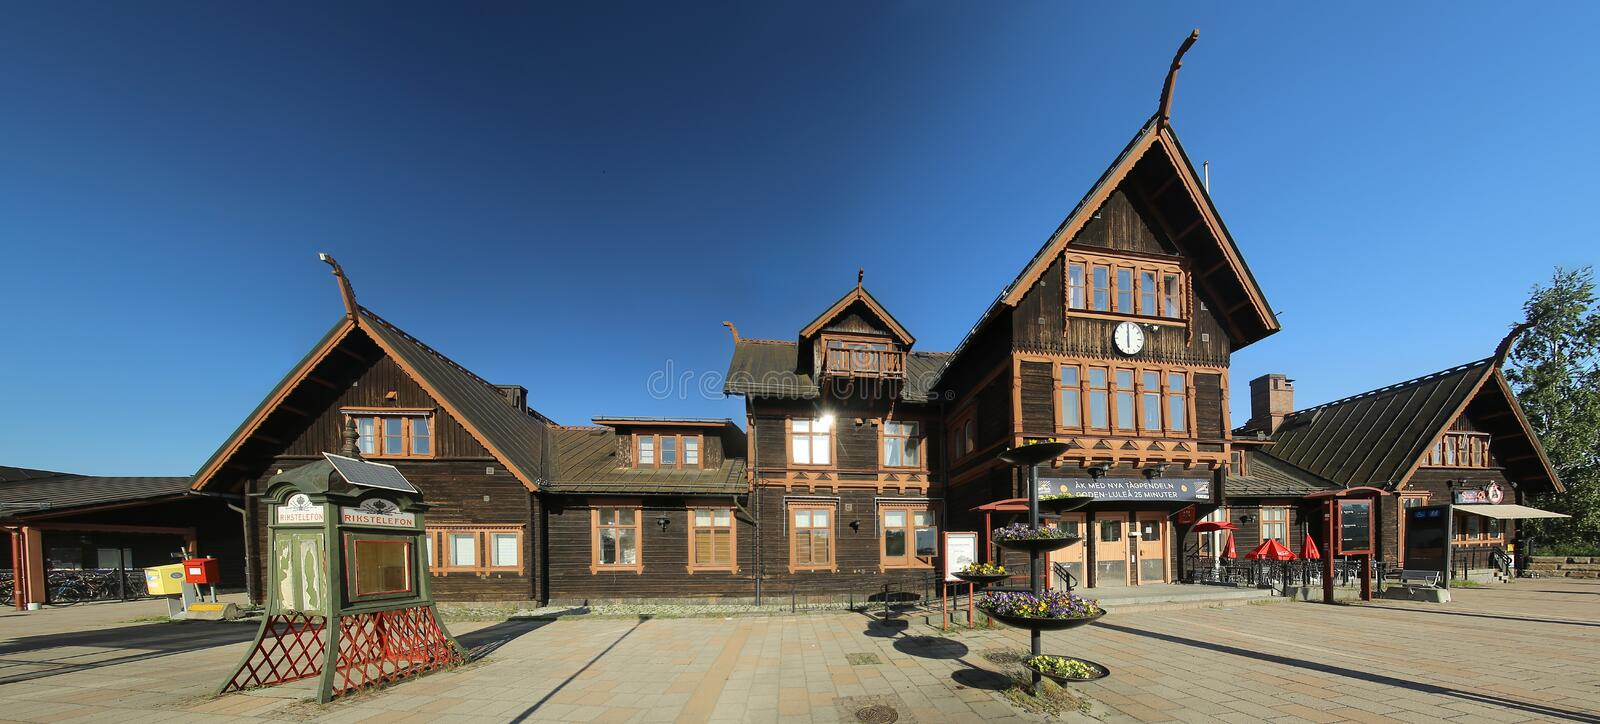 JUN 16 2019 - BODEN, SWEDEN : Front view of Bodens central station, an architectural monument built in 1893.  royalty free stock photography